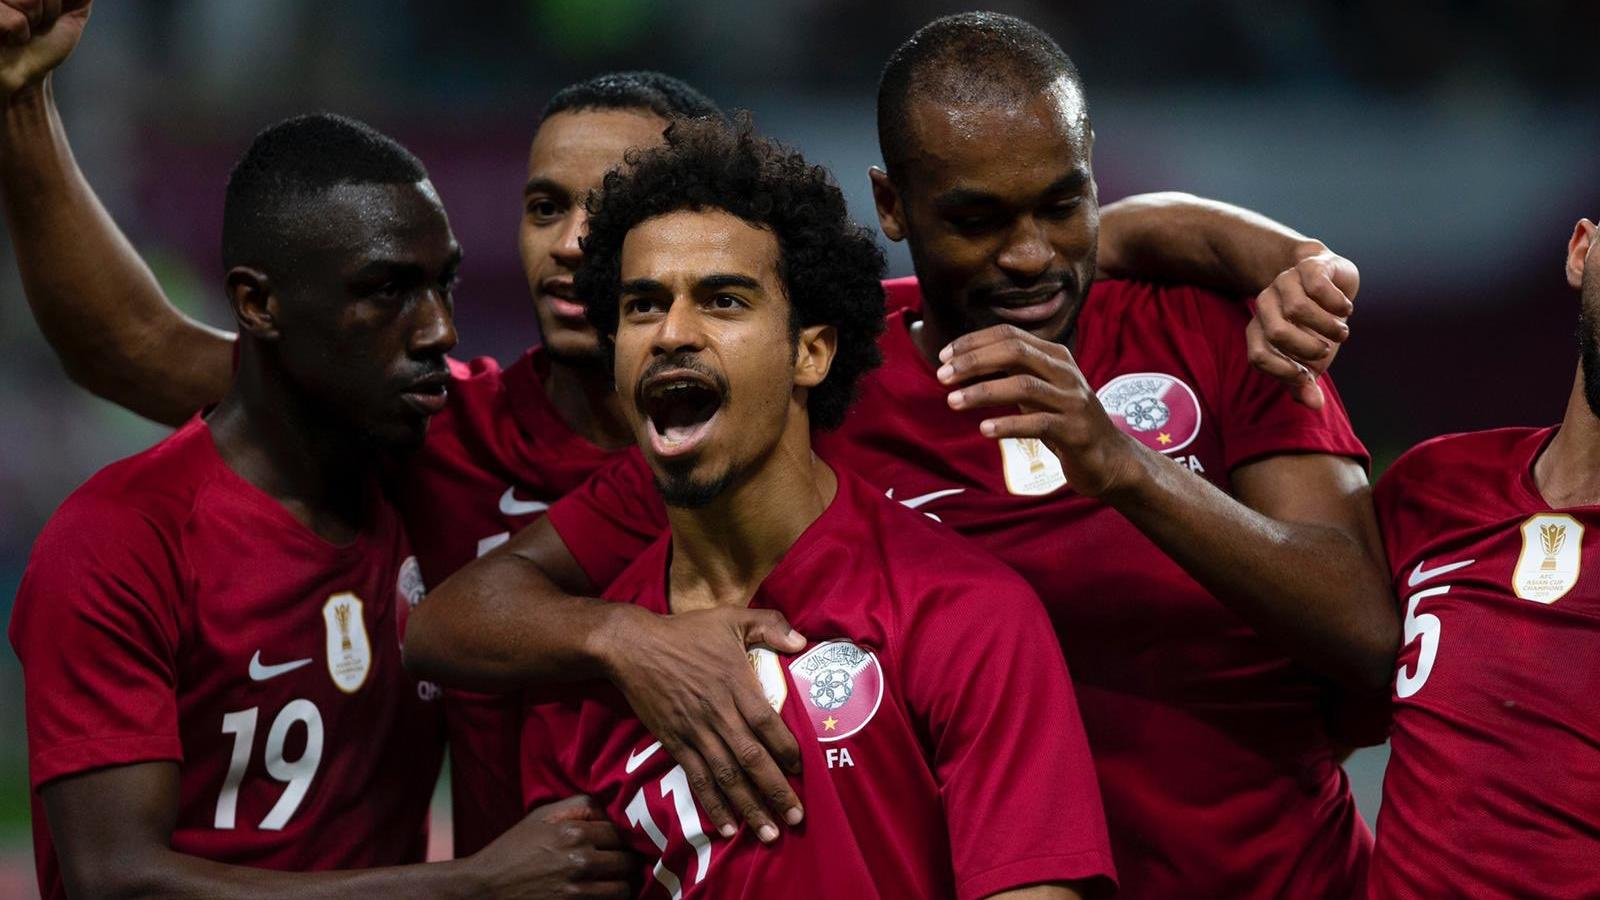 WATCH: Afif shines like a million stars as Qatar pounds UAE 4-2 to earn semis berth